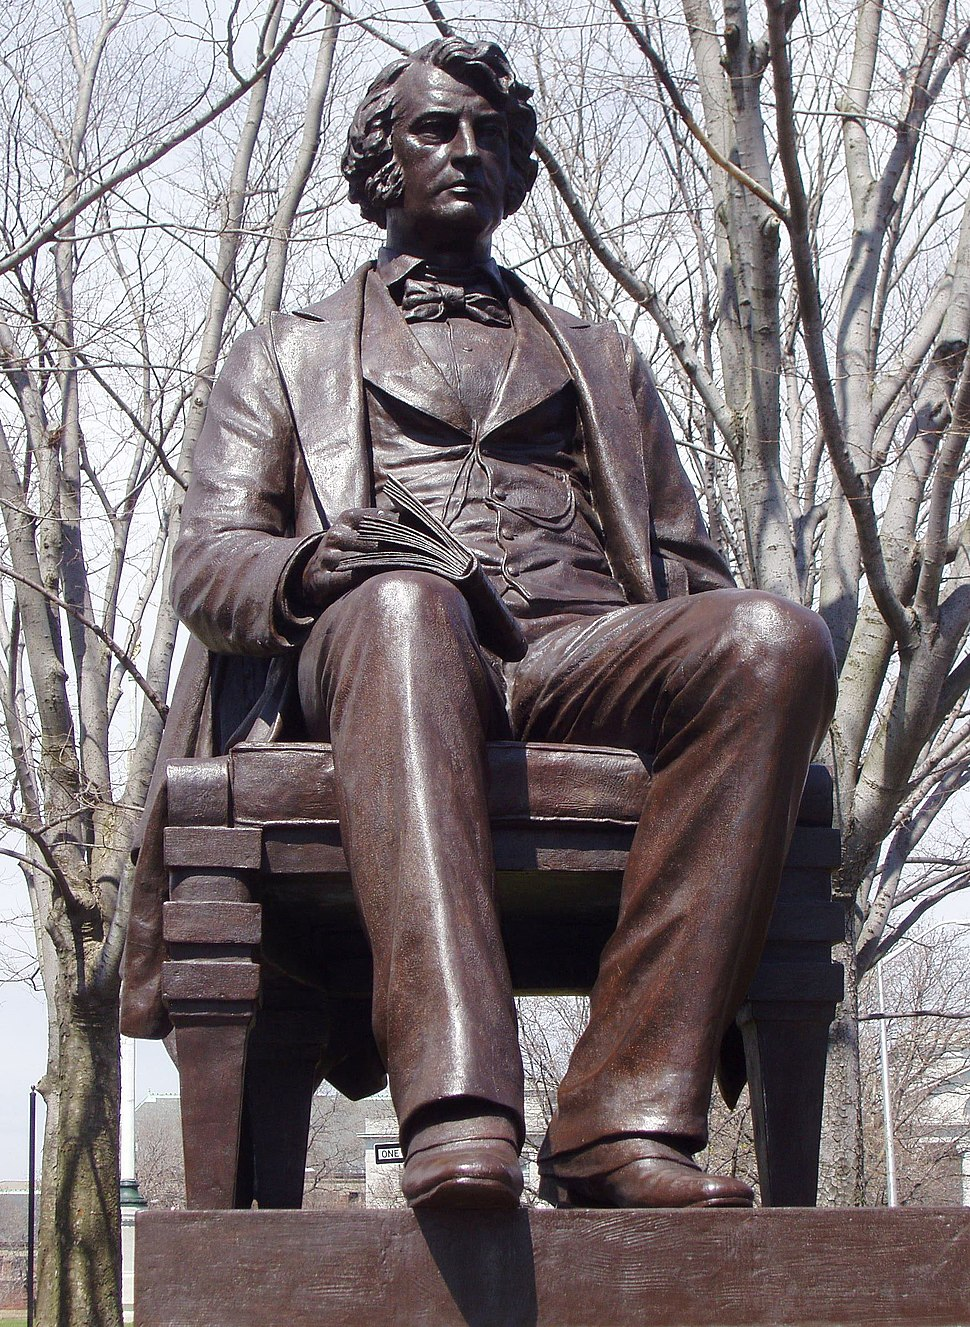 Charles Sumner statue (Cambridge, MA) - Anne Whitney sculptor